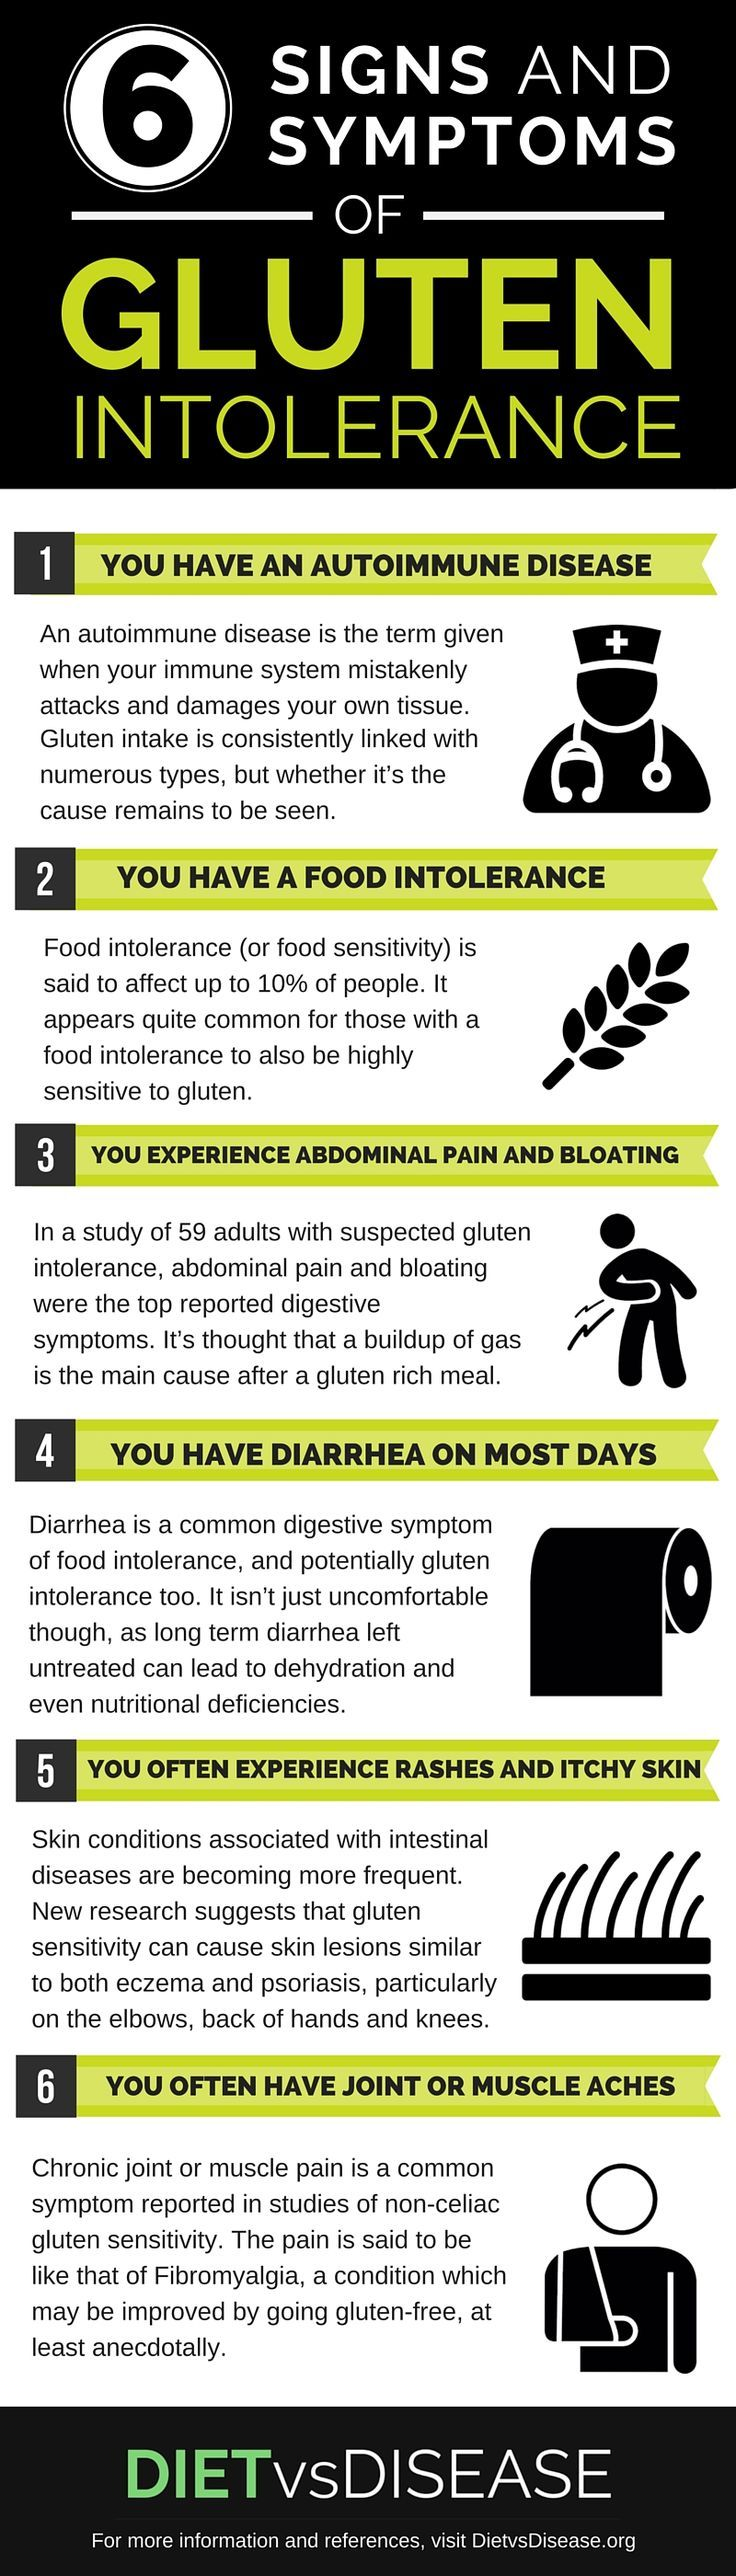 Many people genuinely cannot tolerate gluten, even without celiac disease. This article looks at the most common signs and symptoms of gluten intolerance. Learn more here: http://www.dietvsdisease.org/gluten-intolerance-symptoms/